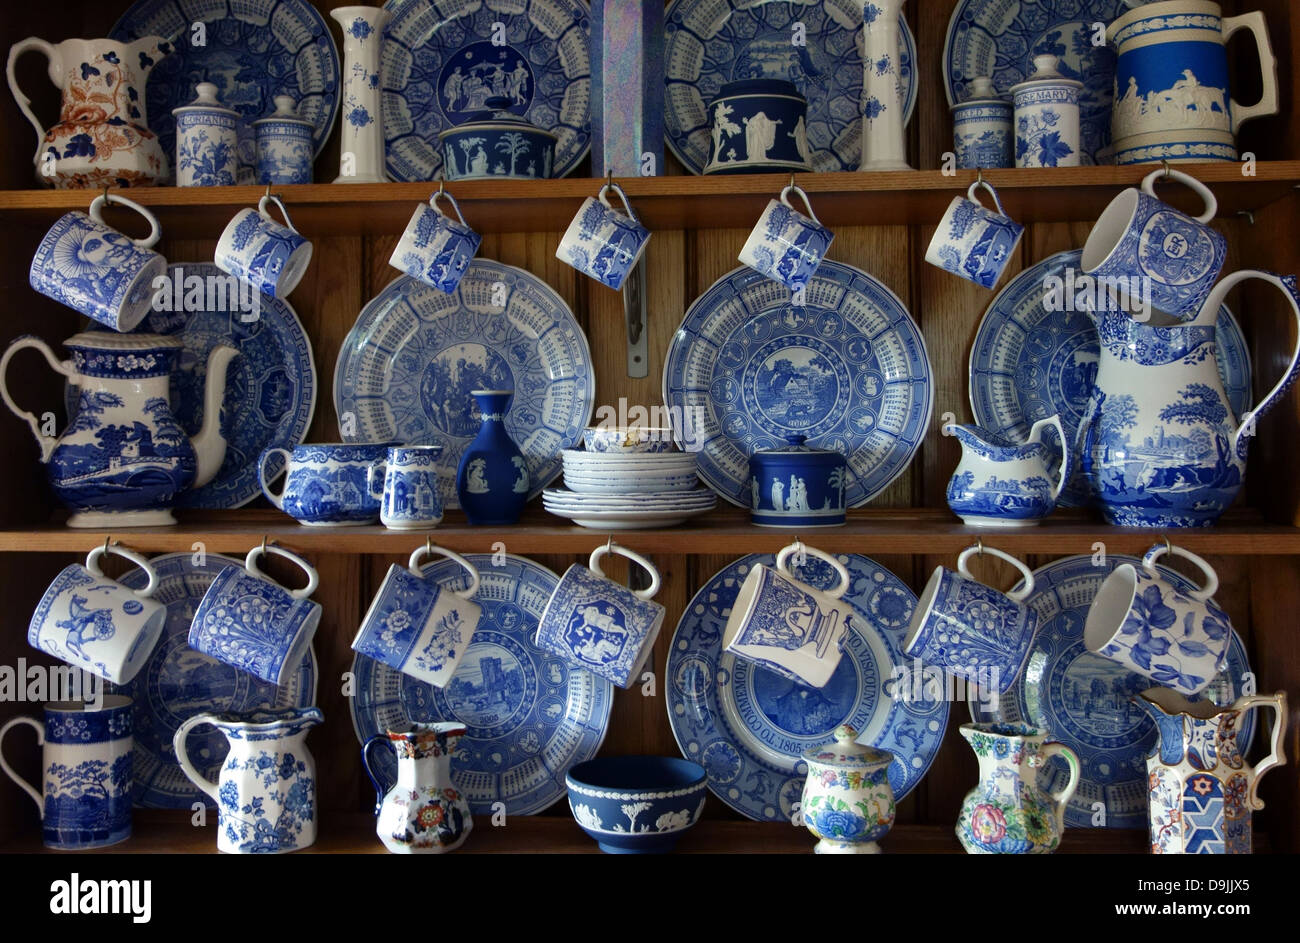 datant Wedgwood poterie